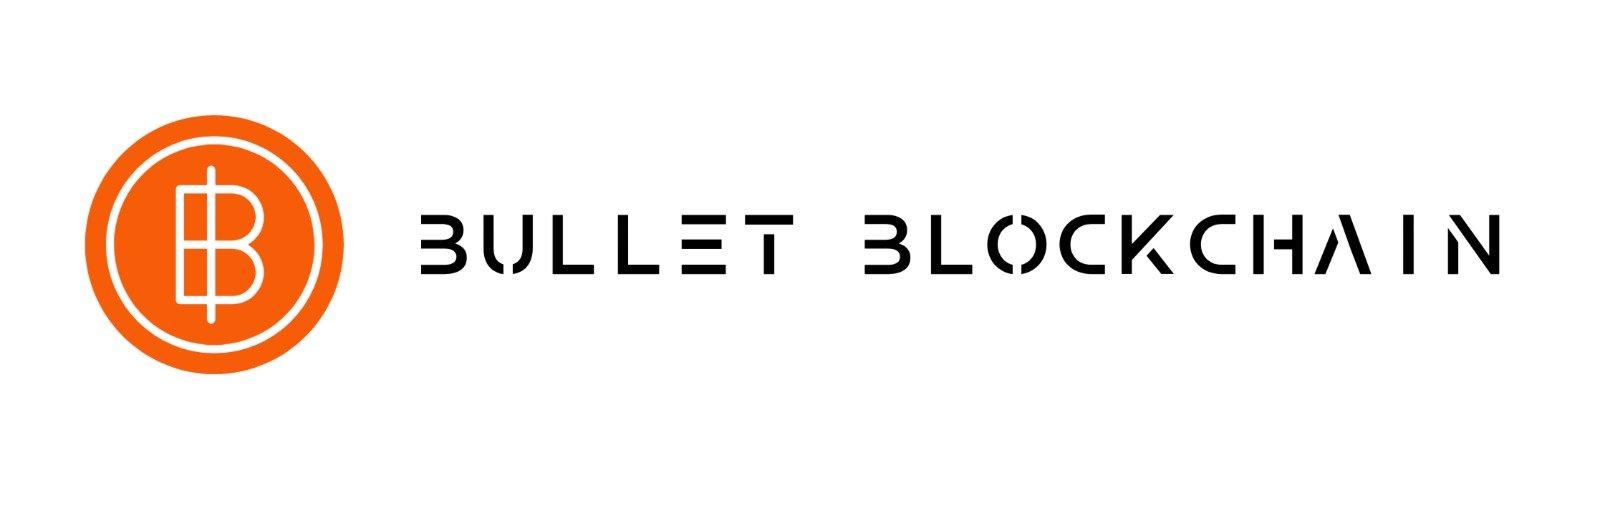 Bullet Blockchain Enters Crypto Market With Turnkey Mining Operations With 3,500 ASIC Miners Producing 315 Petahash Consuming 12 Megawatts